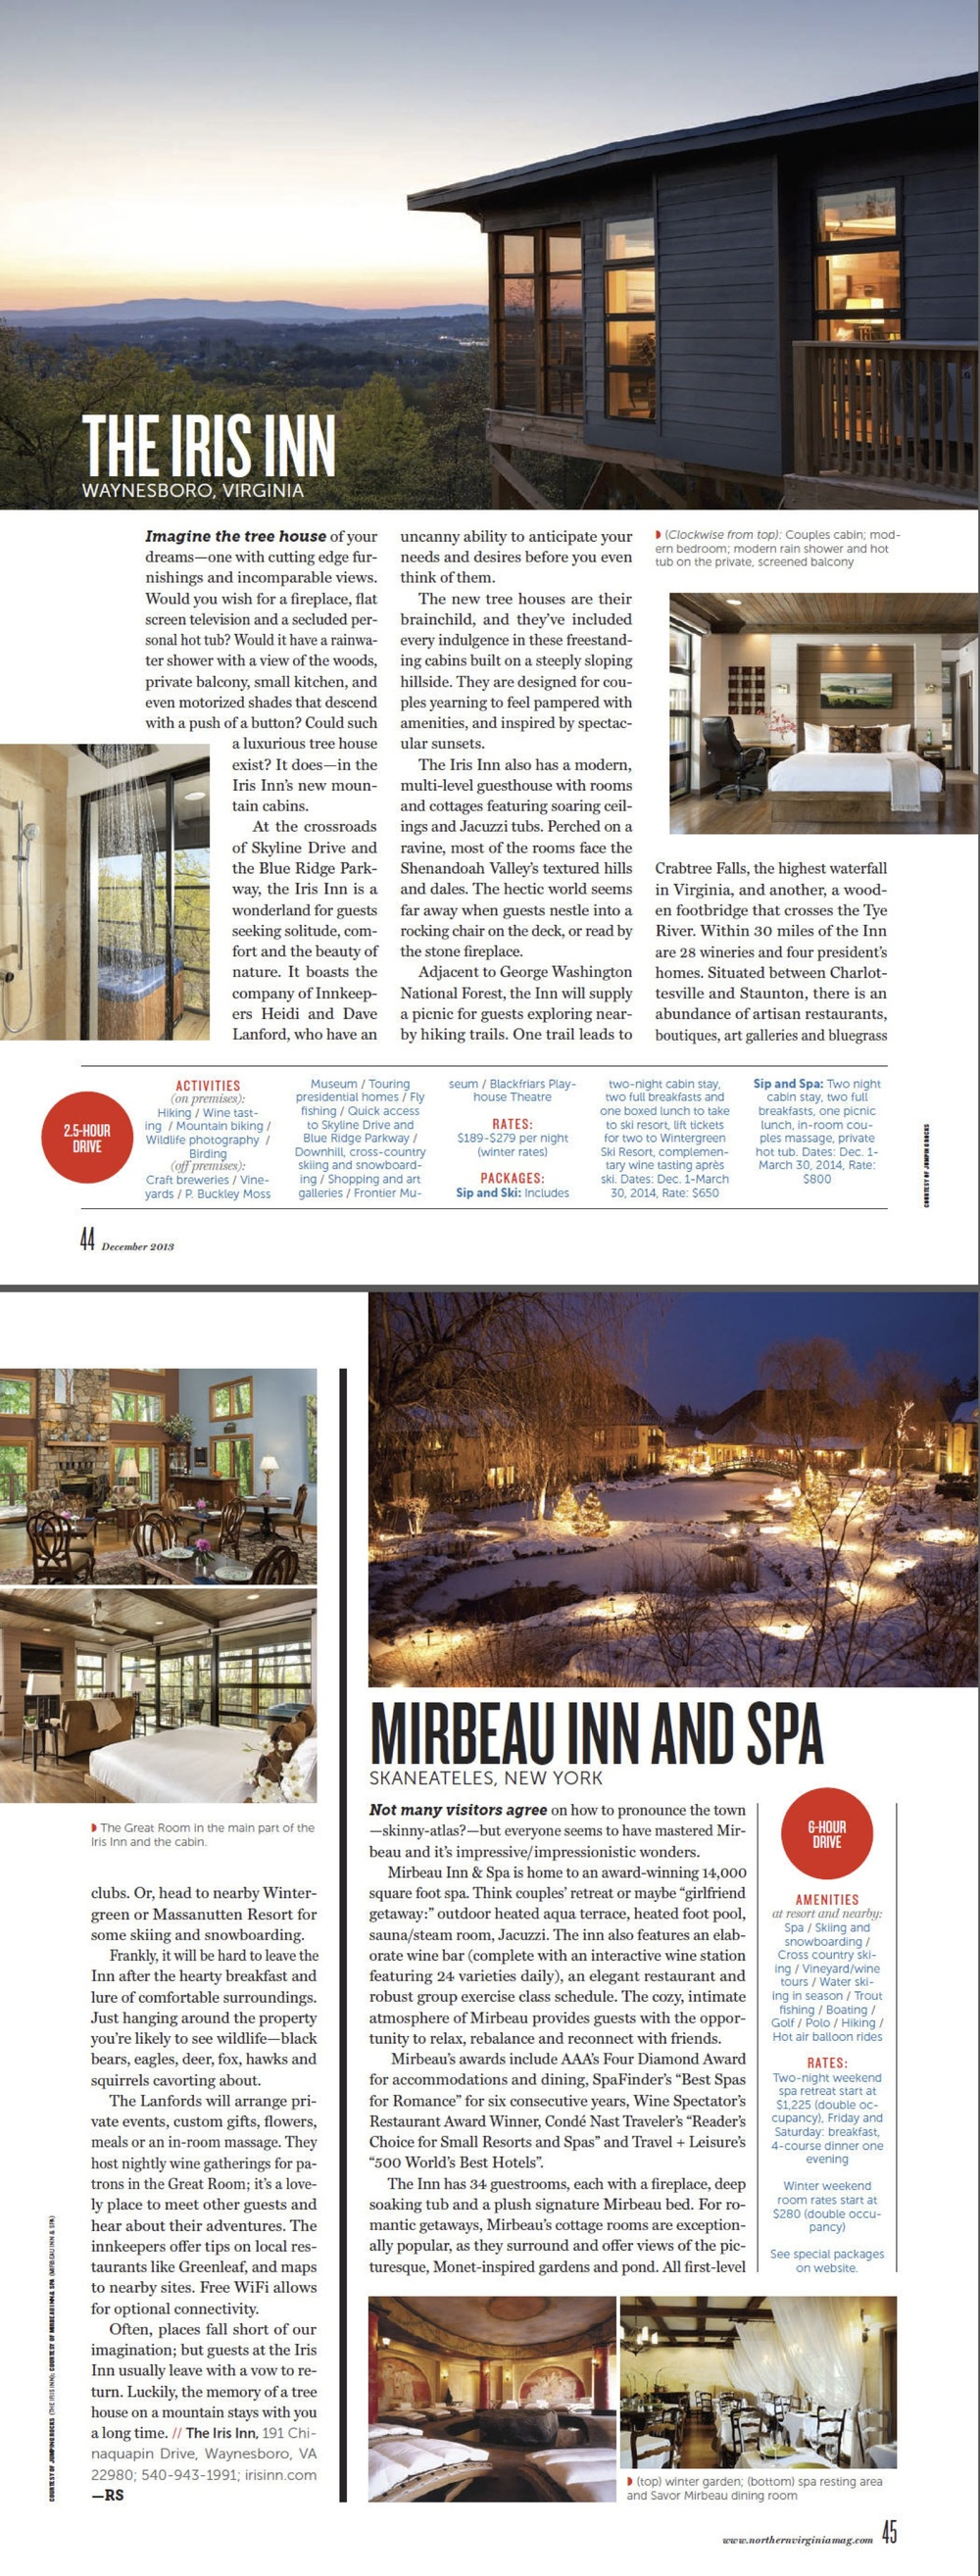 The Iris Inn was featured in Northern Virginia Magazine